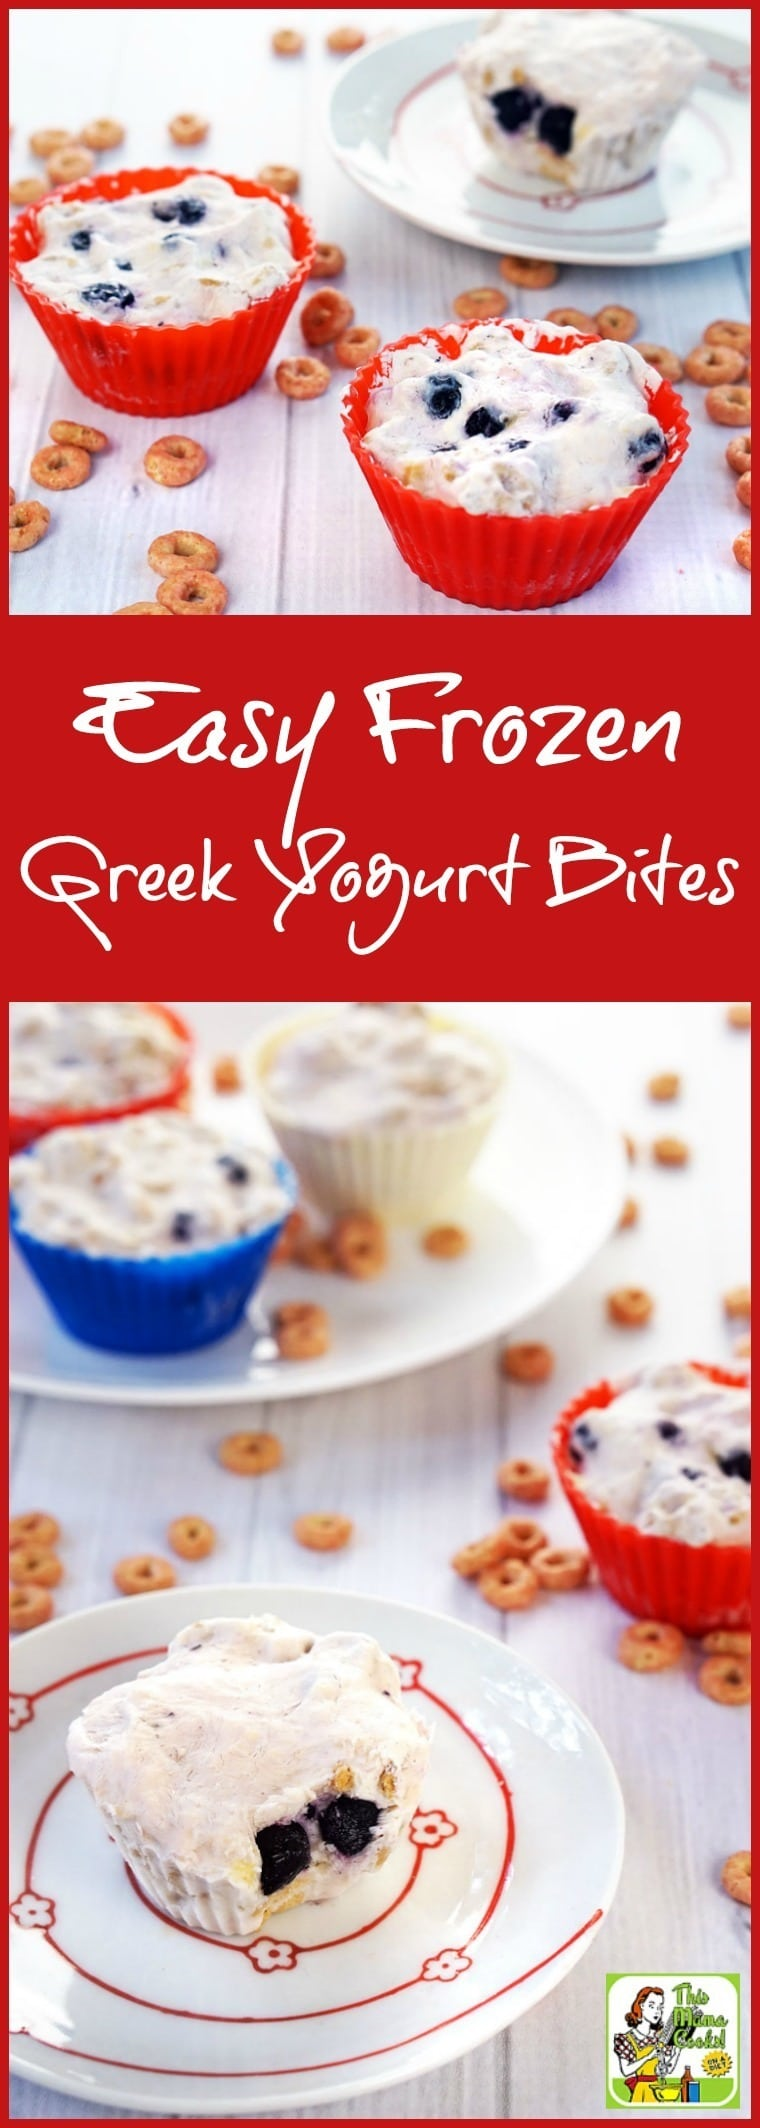 Looking for a healthy, protein packed Greek yogurt breakfast recipe? Click to get this Easy Frozen Greek Yogurt Bites recipe. Terrific as a healthy after school snack! Made with gluten free cereal and fresh or frozen fruit.